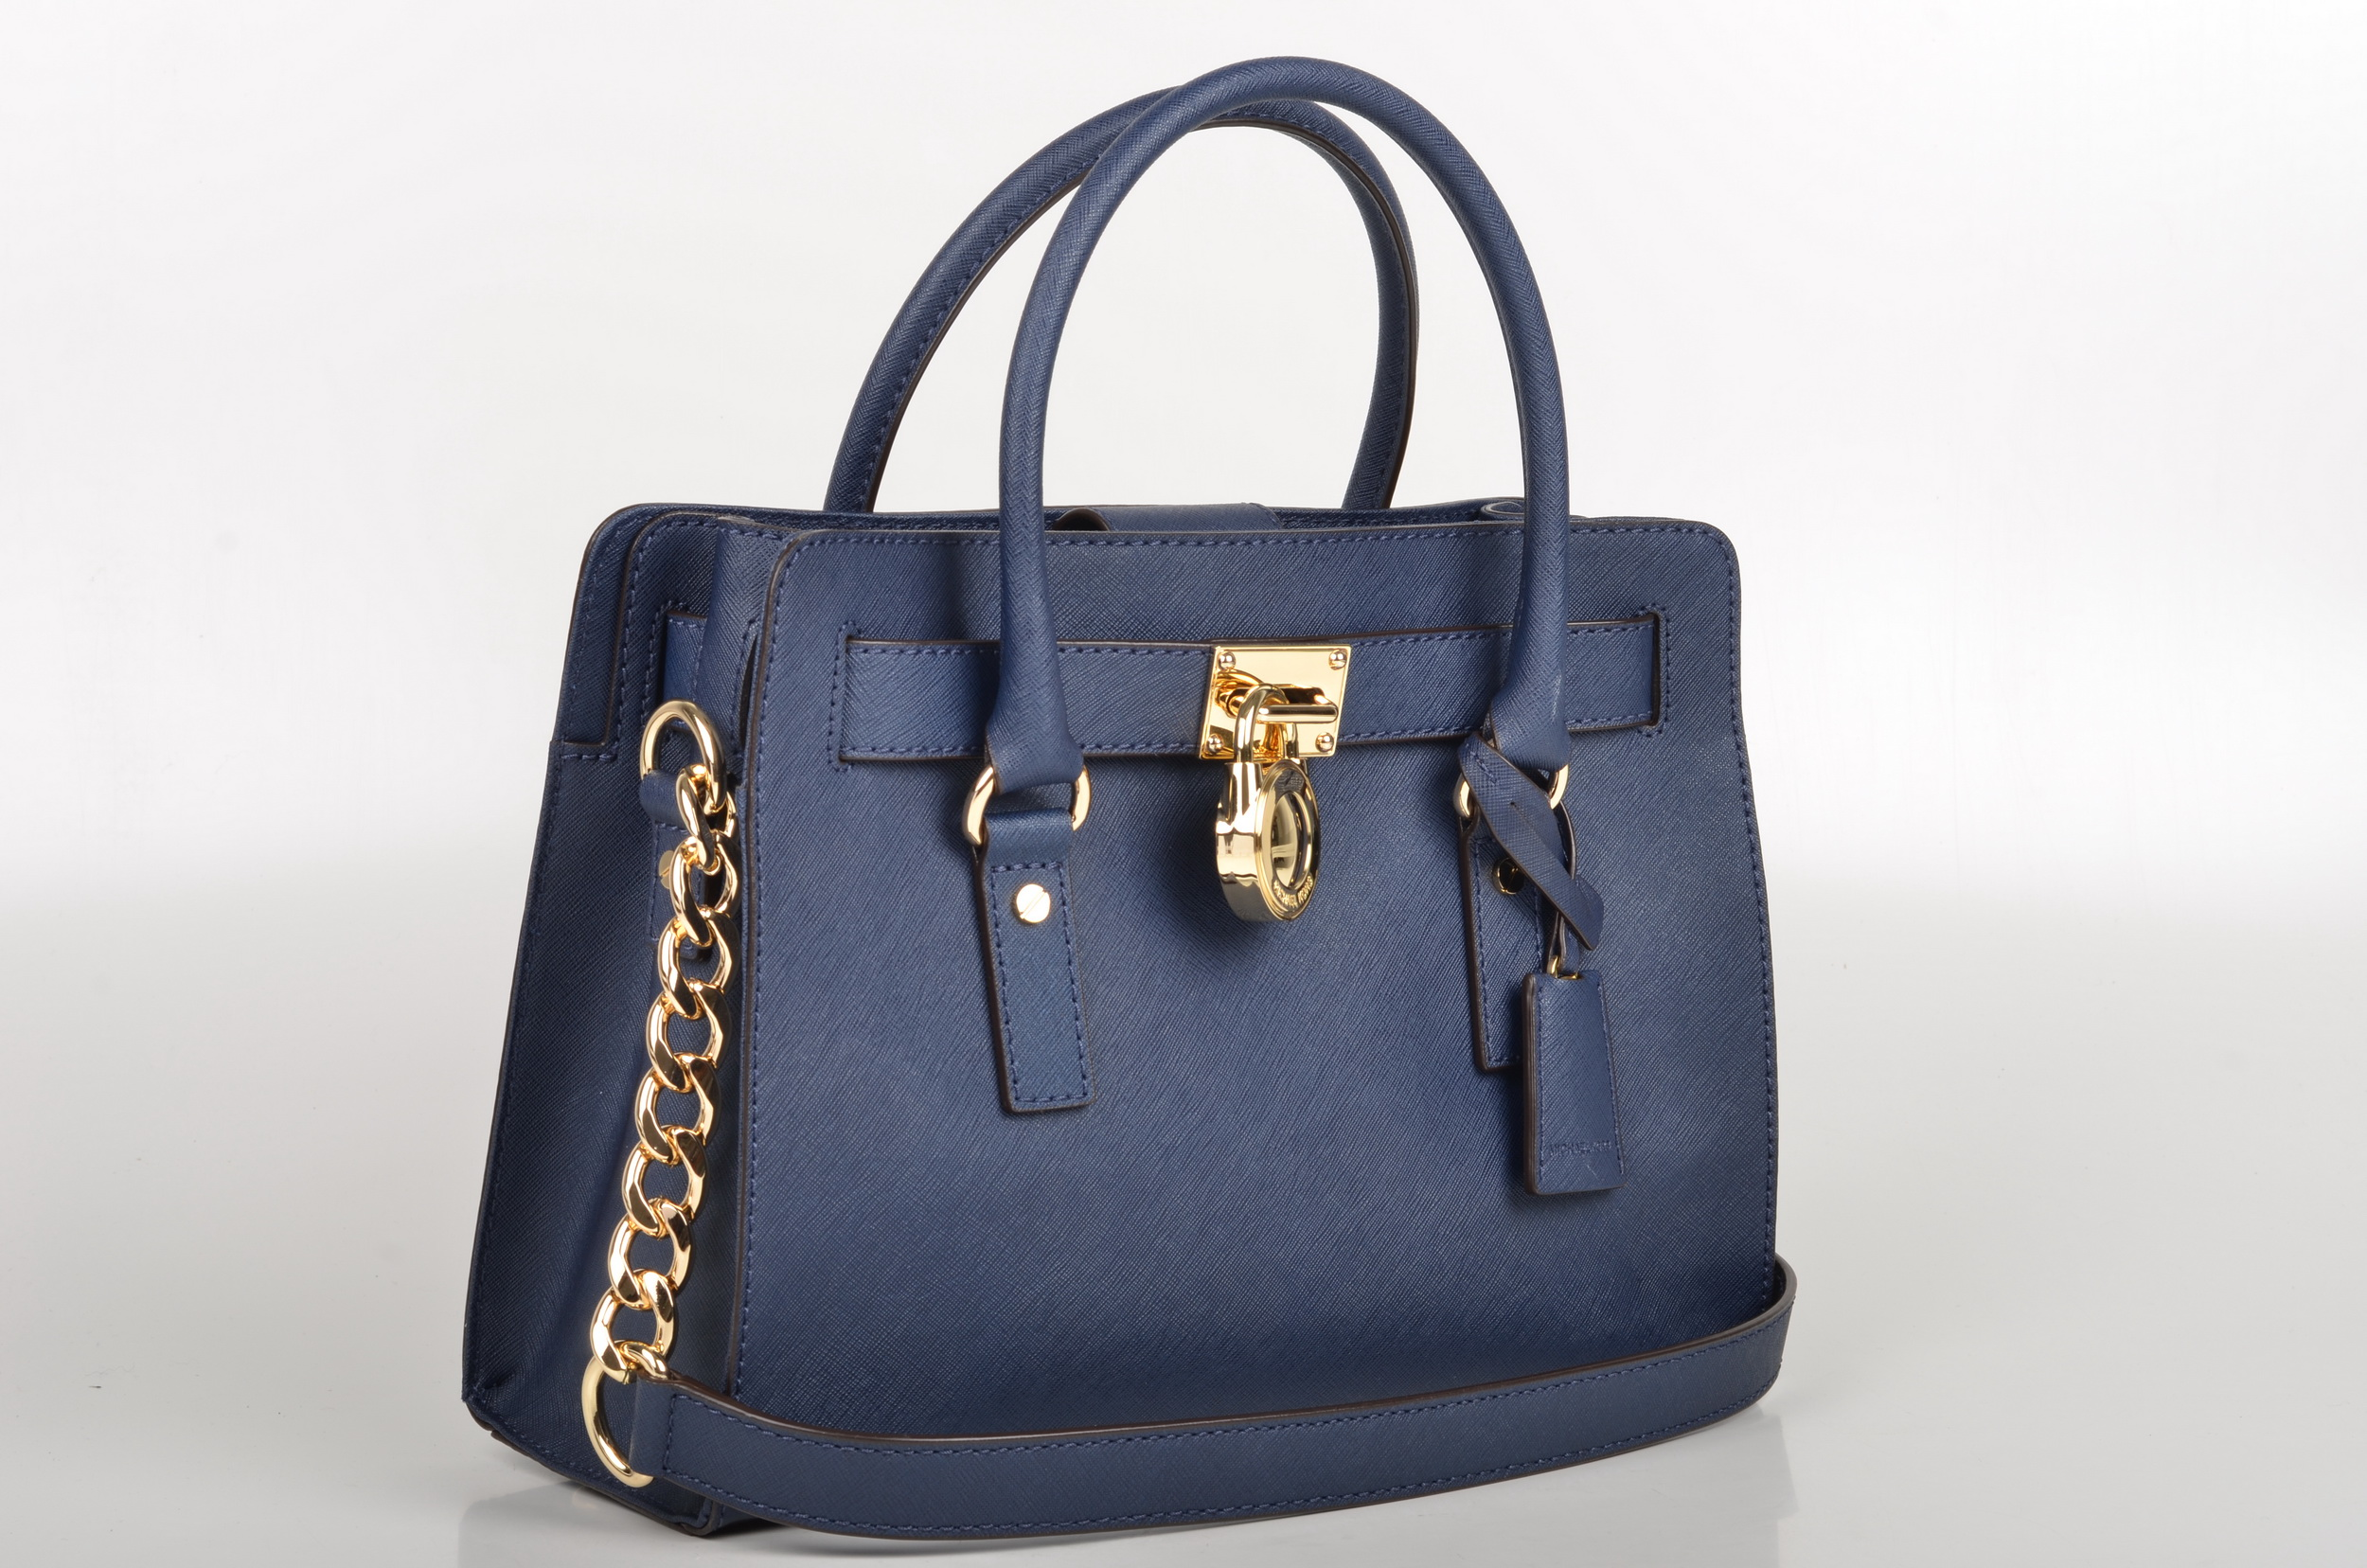 file michael kors hamilton ew satchel handtasche 30s2ghms3l kalbsleder navy blau 2. Black Bedroom Furniture Sets. Home Design Ideas